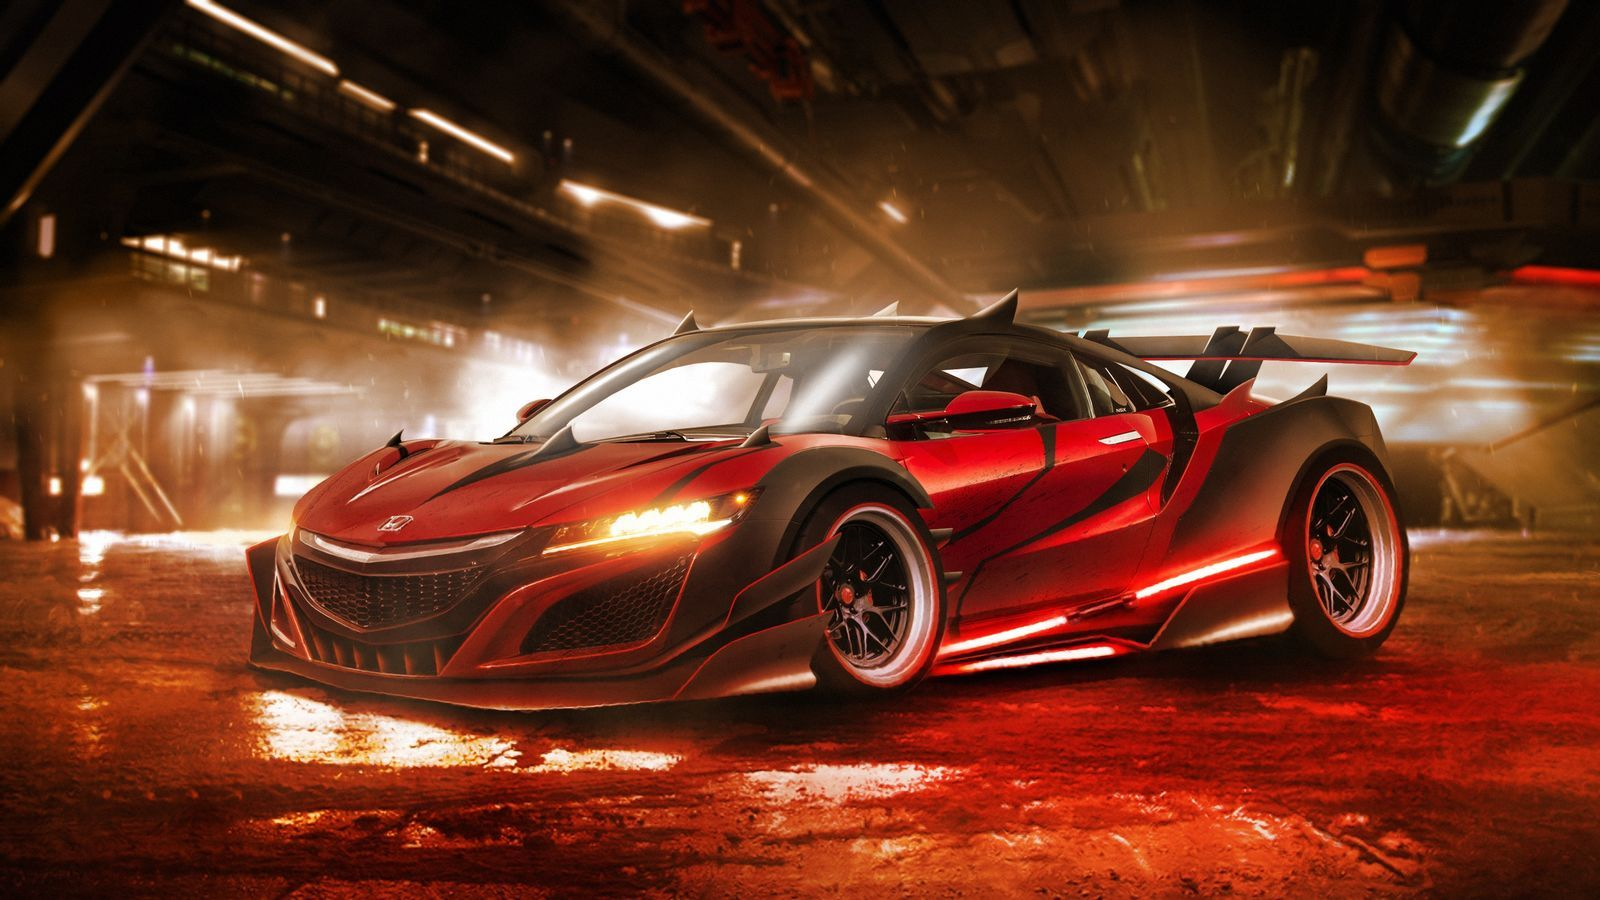 Industrywide Car Deliveries Lowered To An Adjusted Annual Pace Of 16 6 Million Vehicles Sports Cars Luxury Custom Cars Star Wars Characters